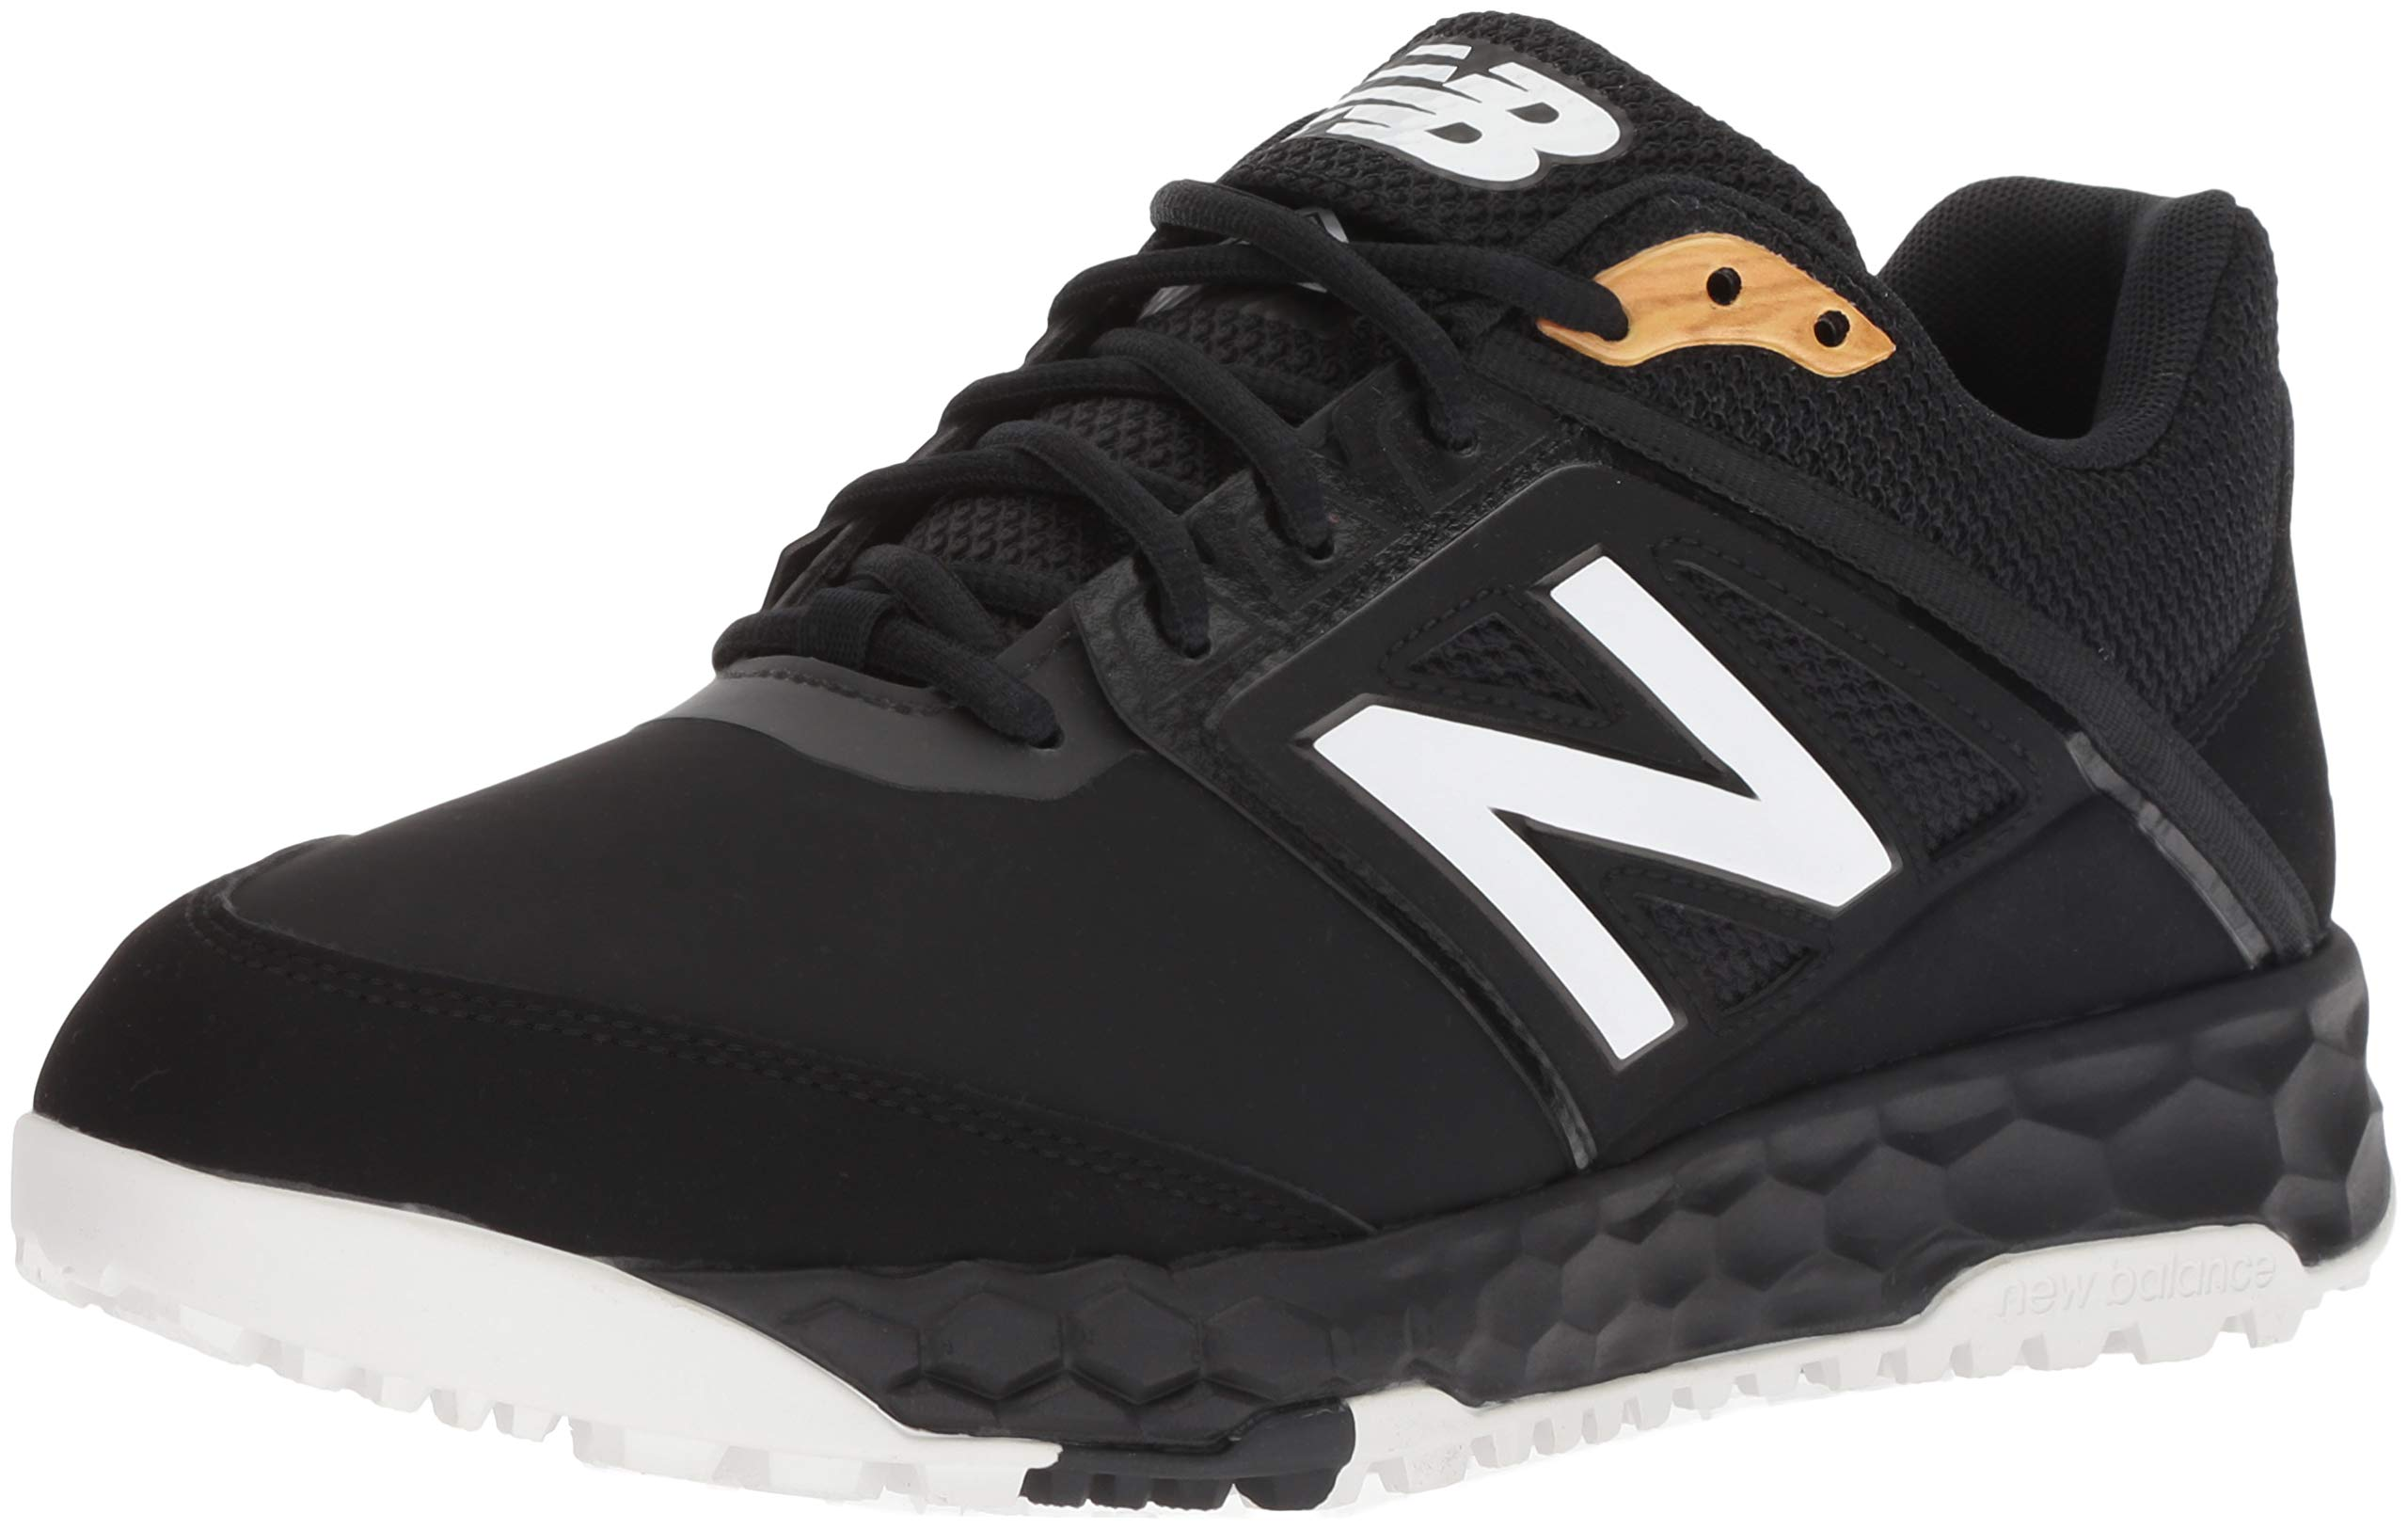 New Balance Men's 3000v4 Turf Baseball Shoe, Black, 5 D US